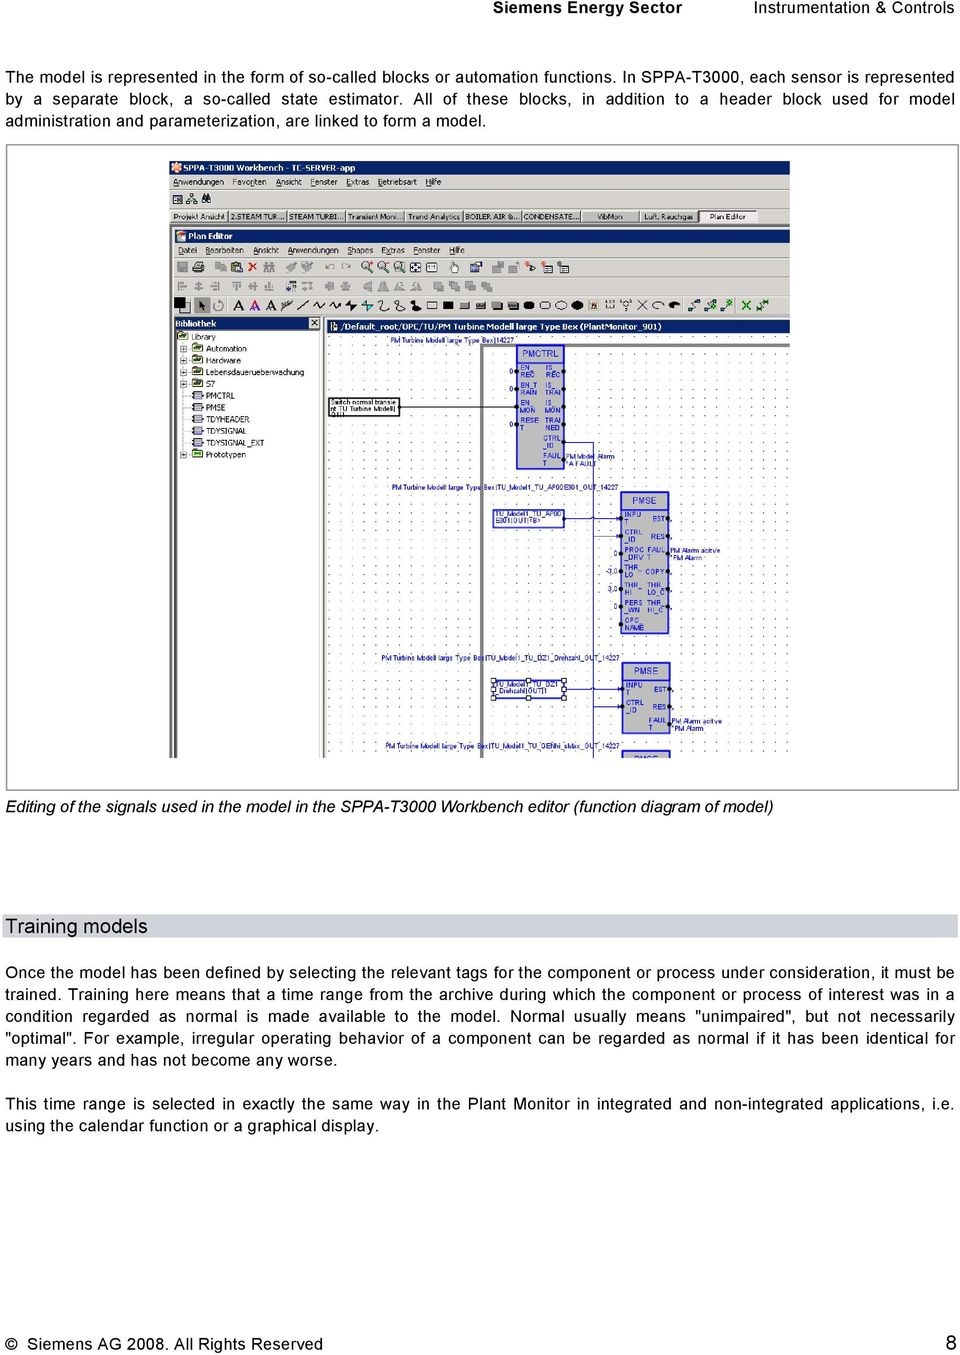 Editing of the signals used in the model in the SPPA-T3000 Workbench editor (function diagram of model) Training models Once the model has been defined by selecting the relevant tags for the